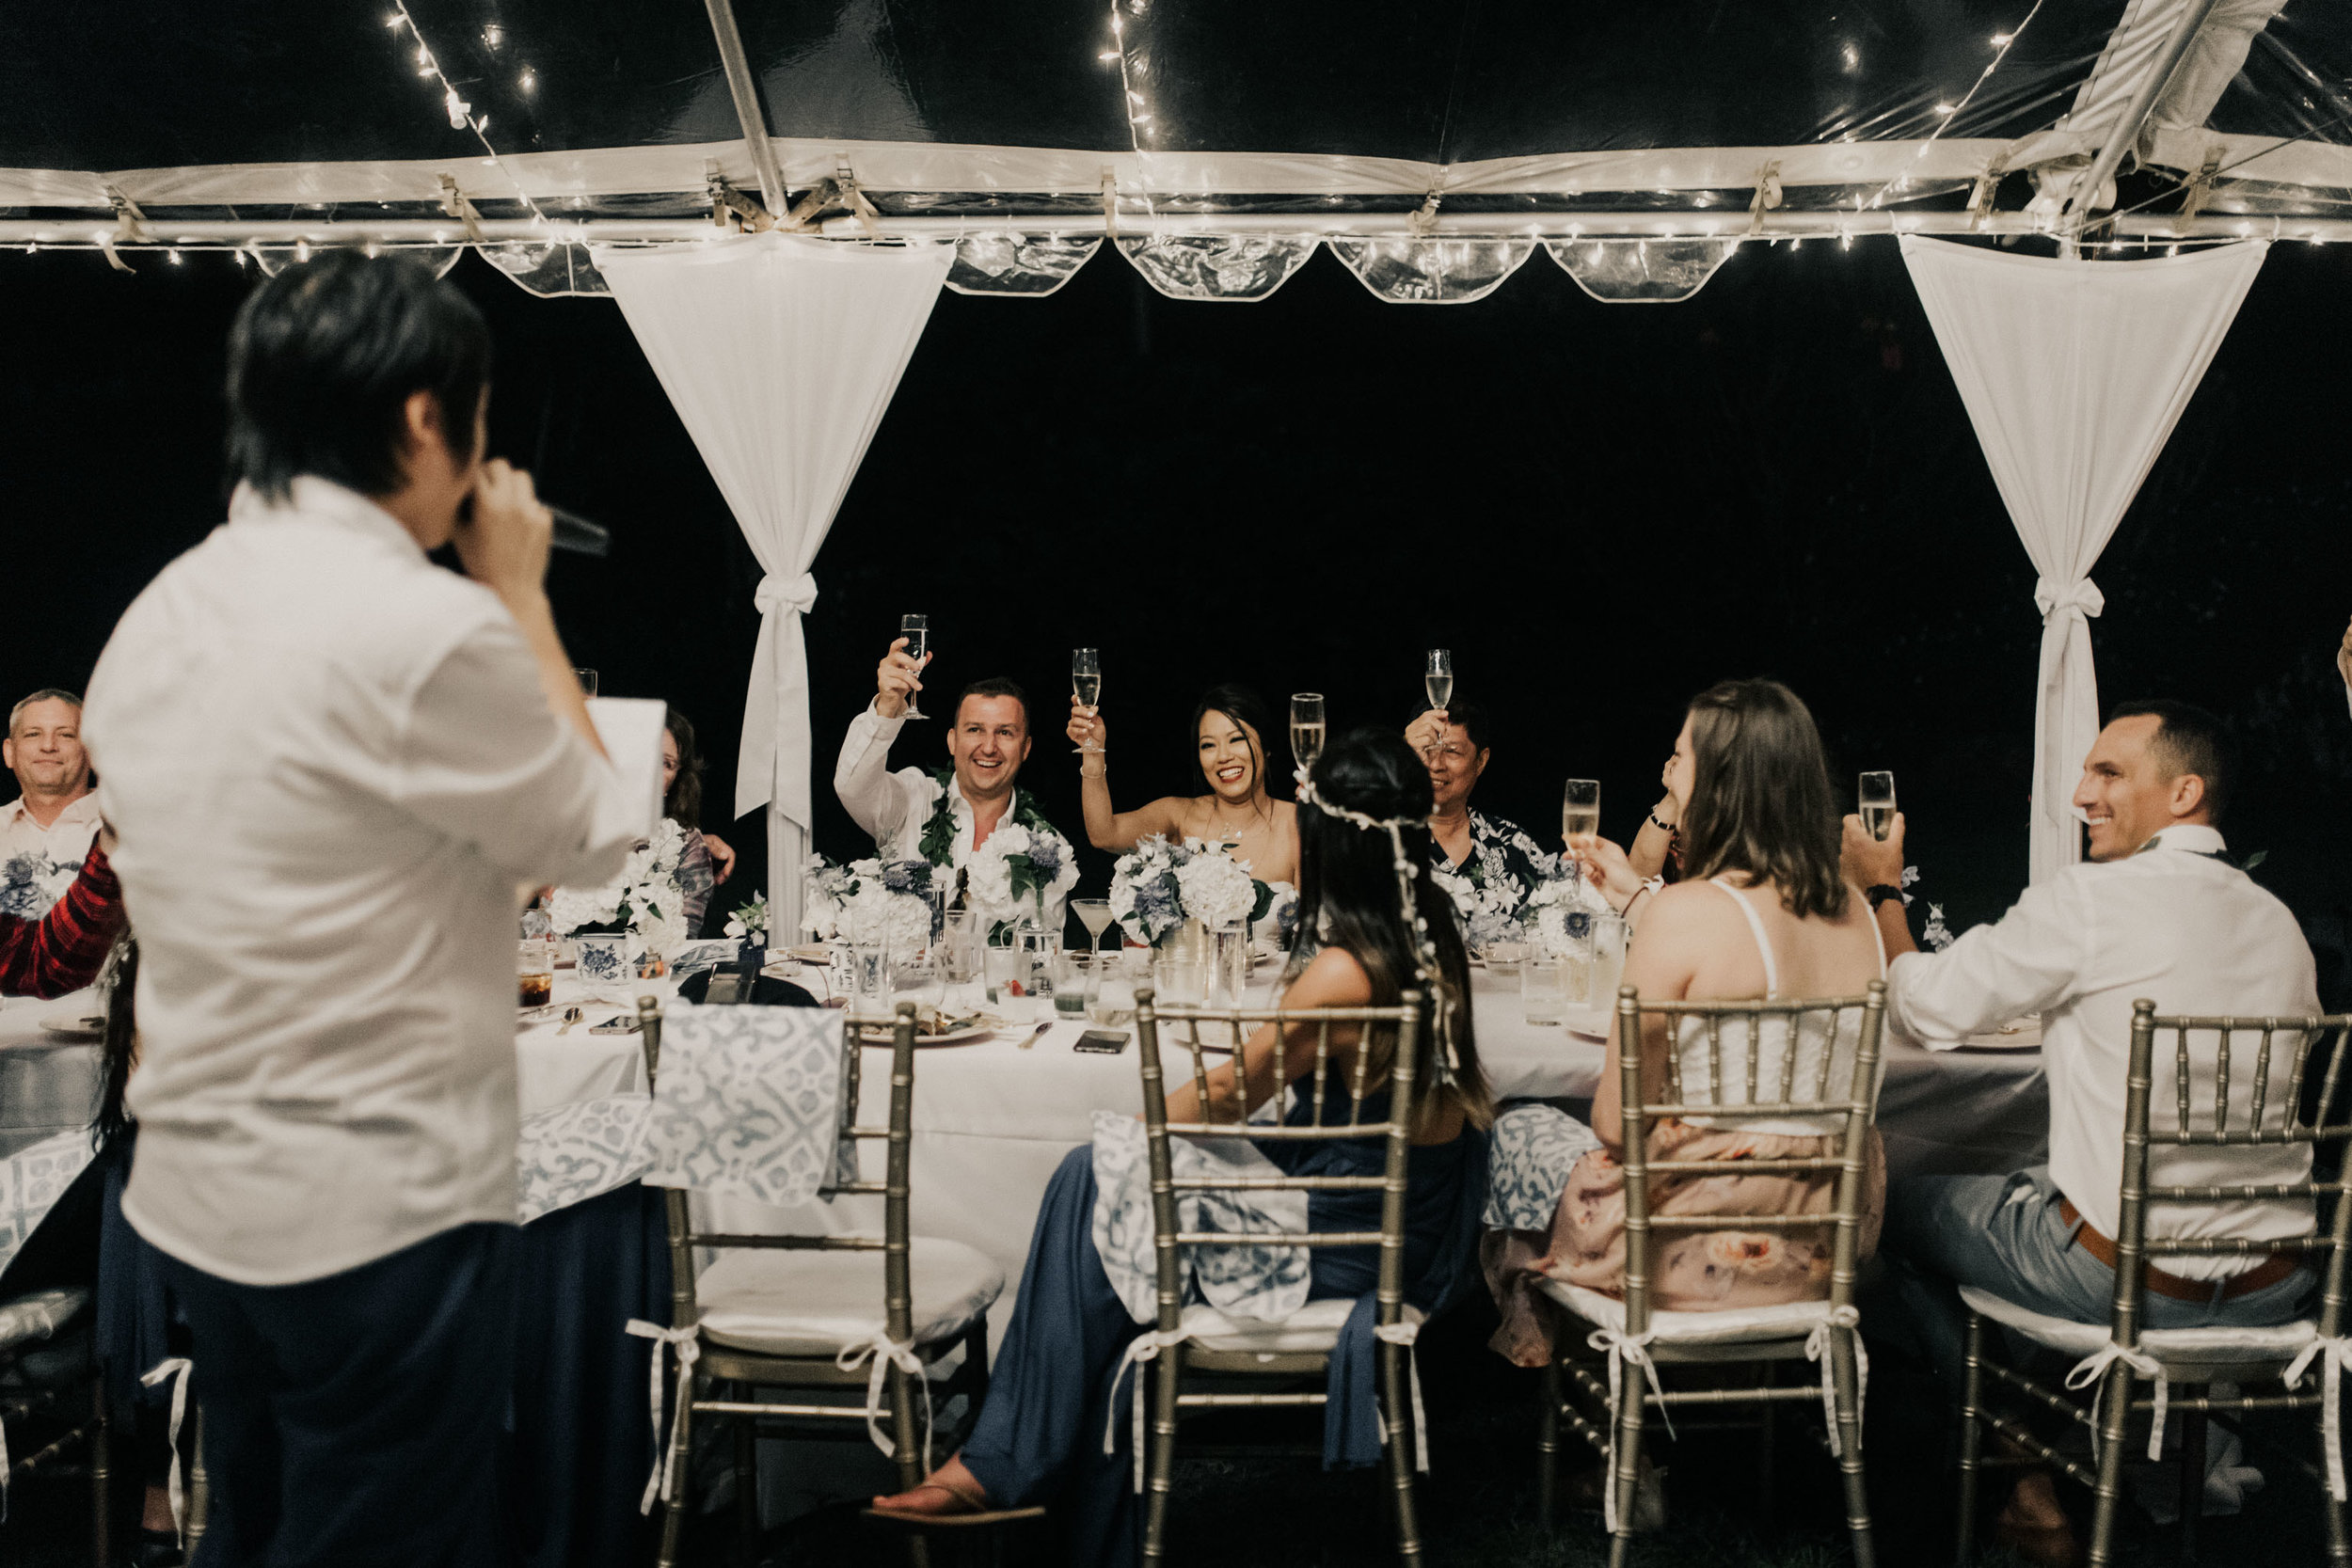 Toasting the bride and groom at a Kualoa Ranch wedding. Photo by Oahu wedding photographer Desiree Leilani